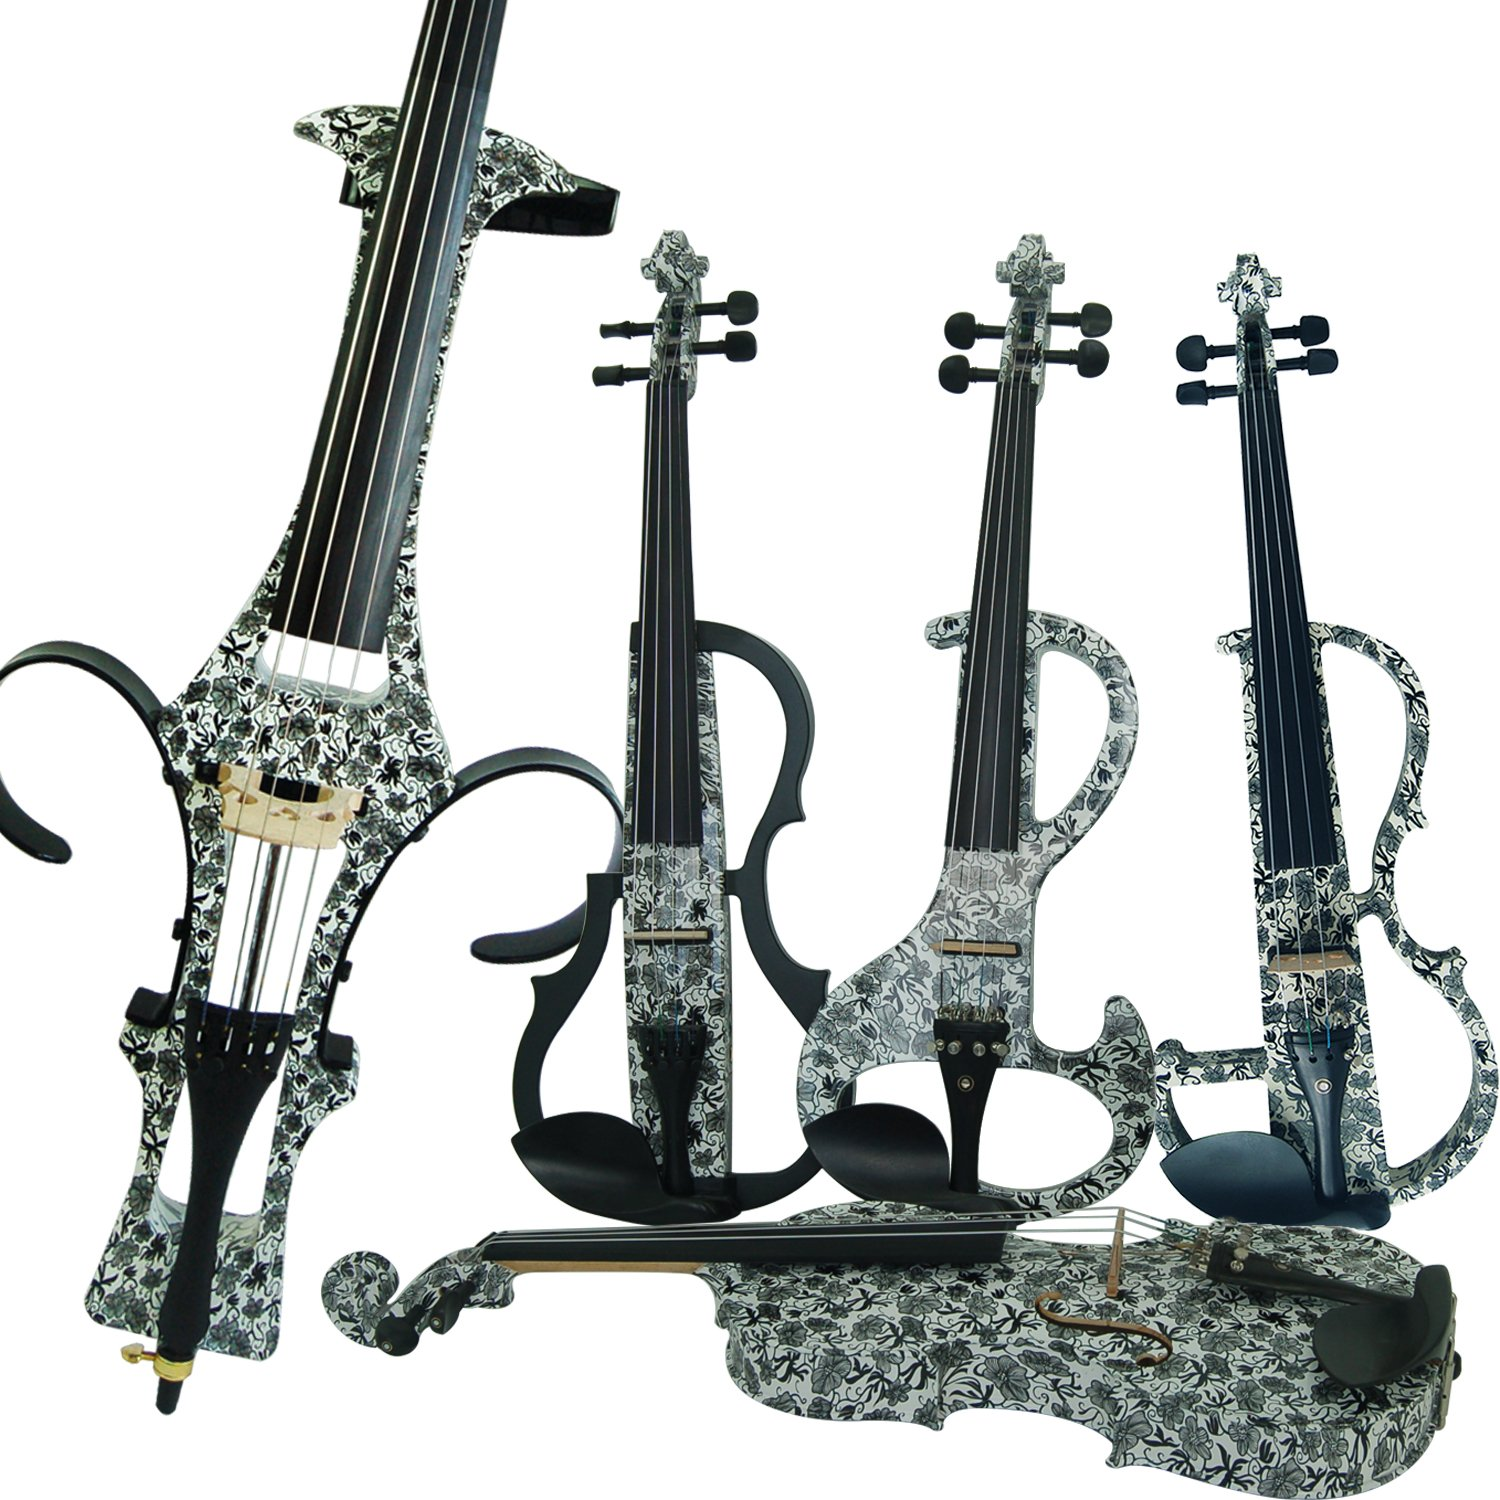 Leeche Premium 4/4 Full Size Solid Wood Electric Cello Violoncello Maple Solid Wood body Ebony Fittings with Bag, Bow, Rosin, Aux Cable, Earphone, Extra set of Strings(Art Black Flowers) by leeche